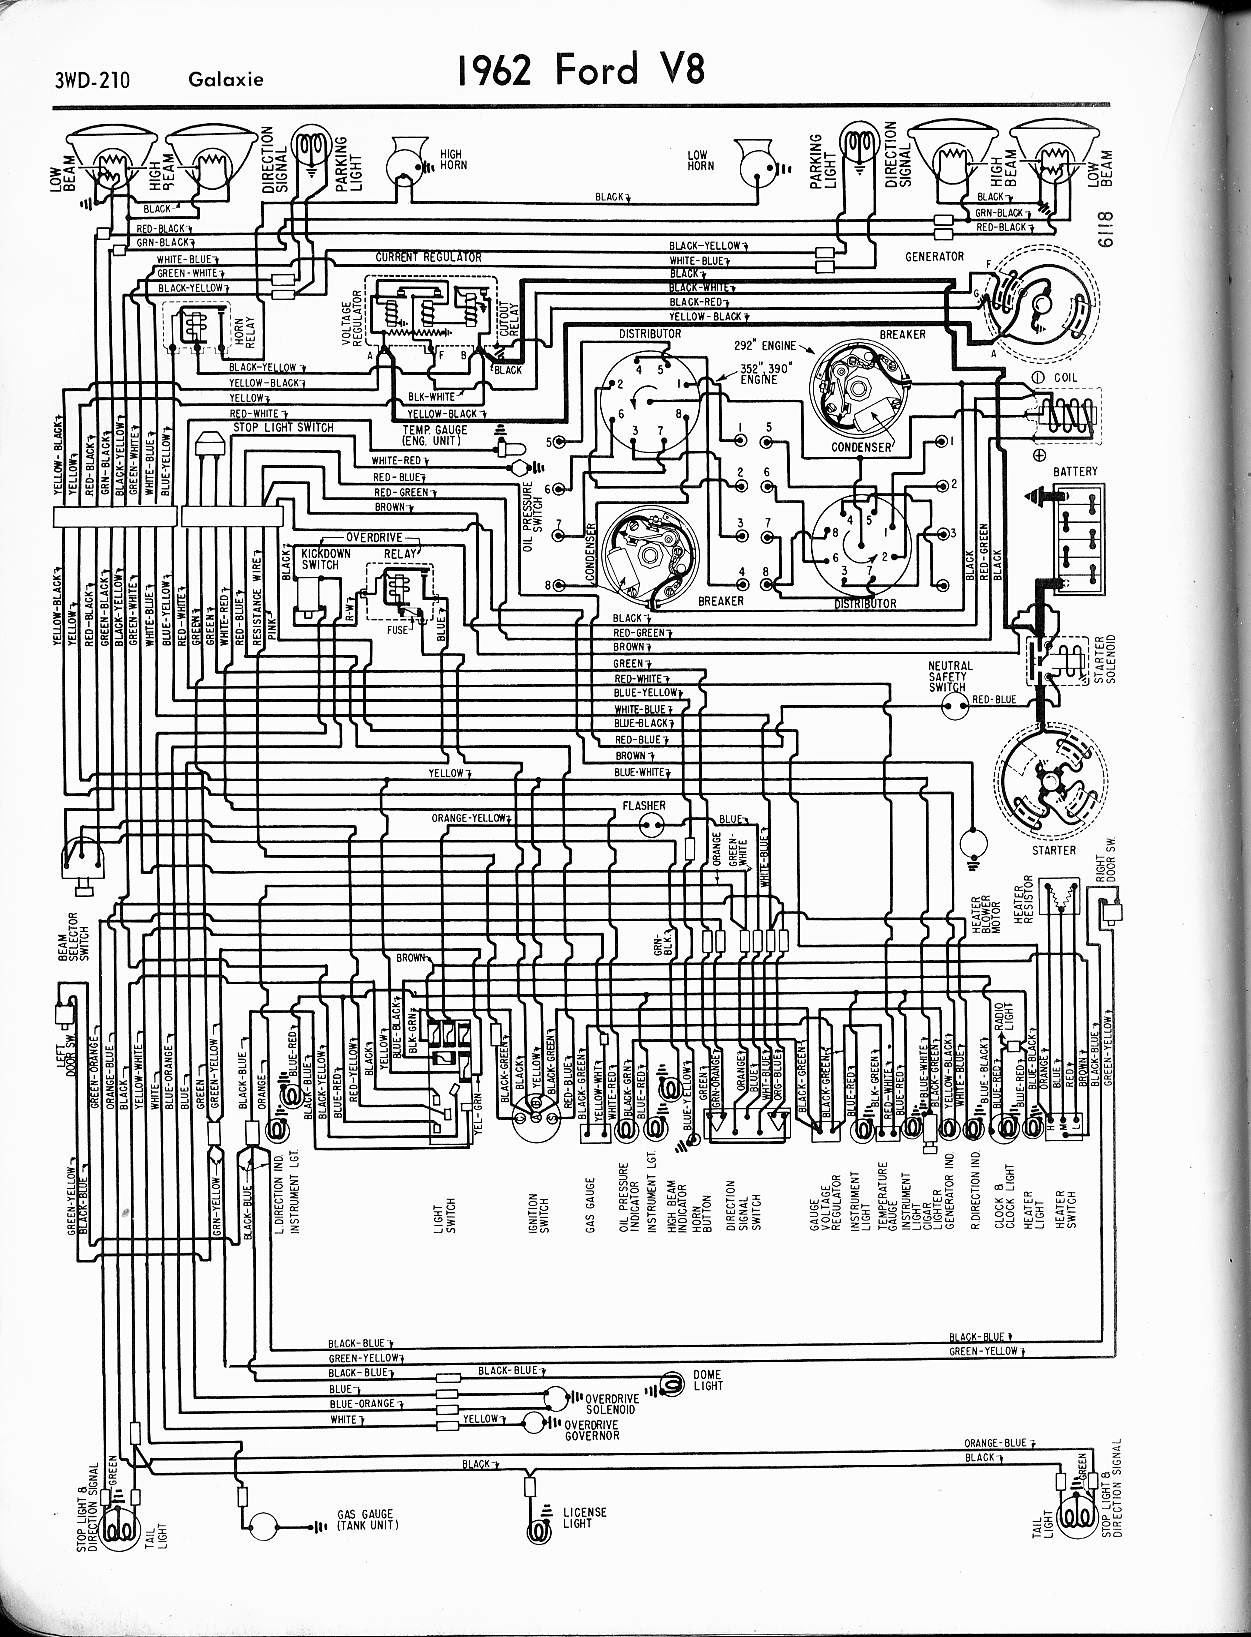 1966 Ford Galaxie Engine Wiring Diagram Wiring Diagram Report1 Report1 Maceratadoc It